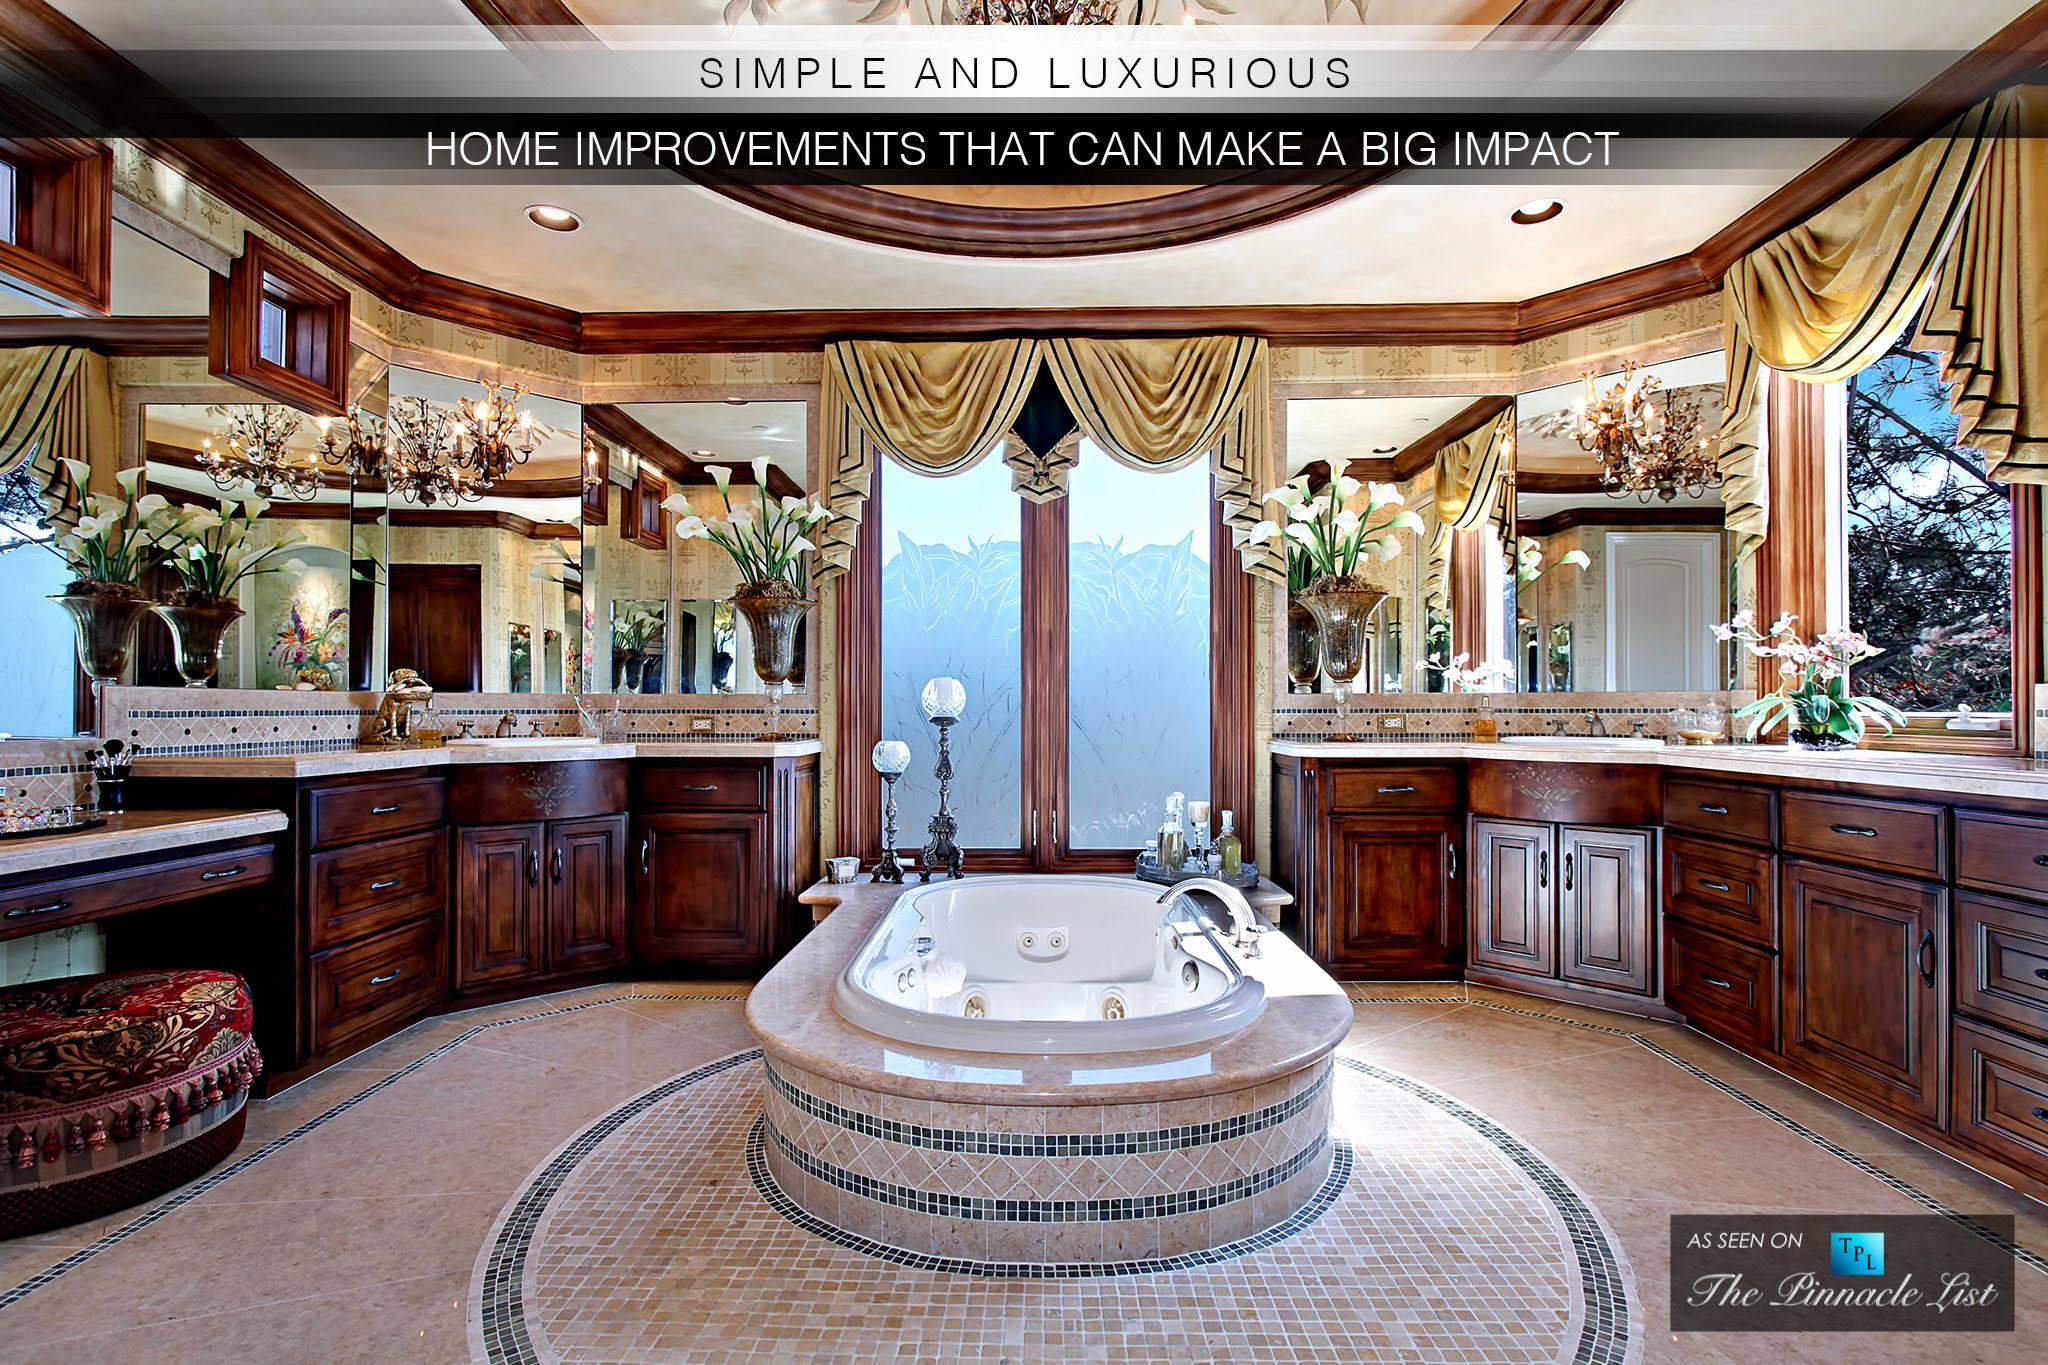 Simple Luxurious Home Improvements Can Make Big